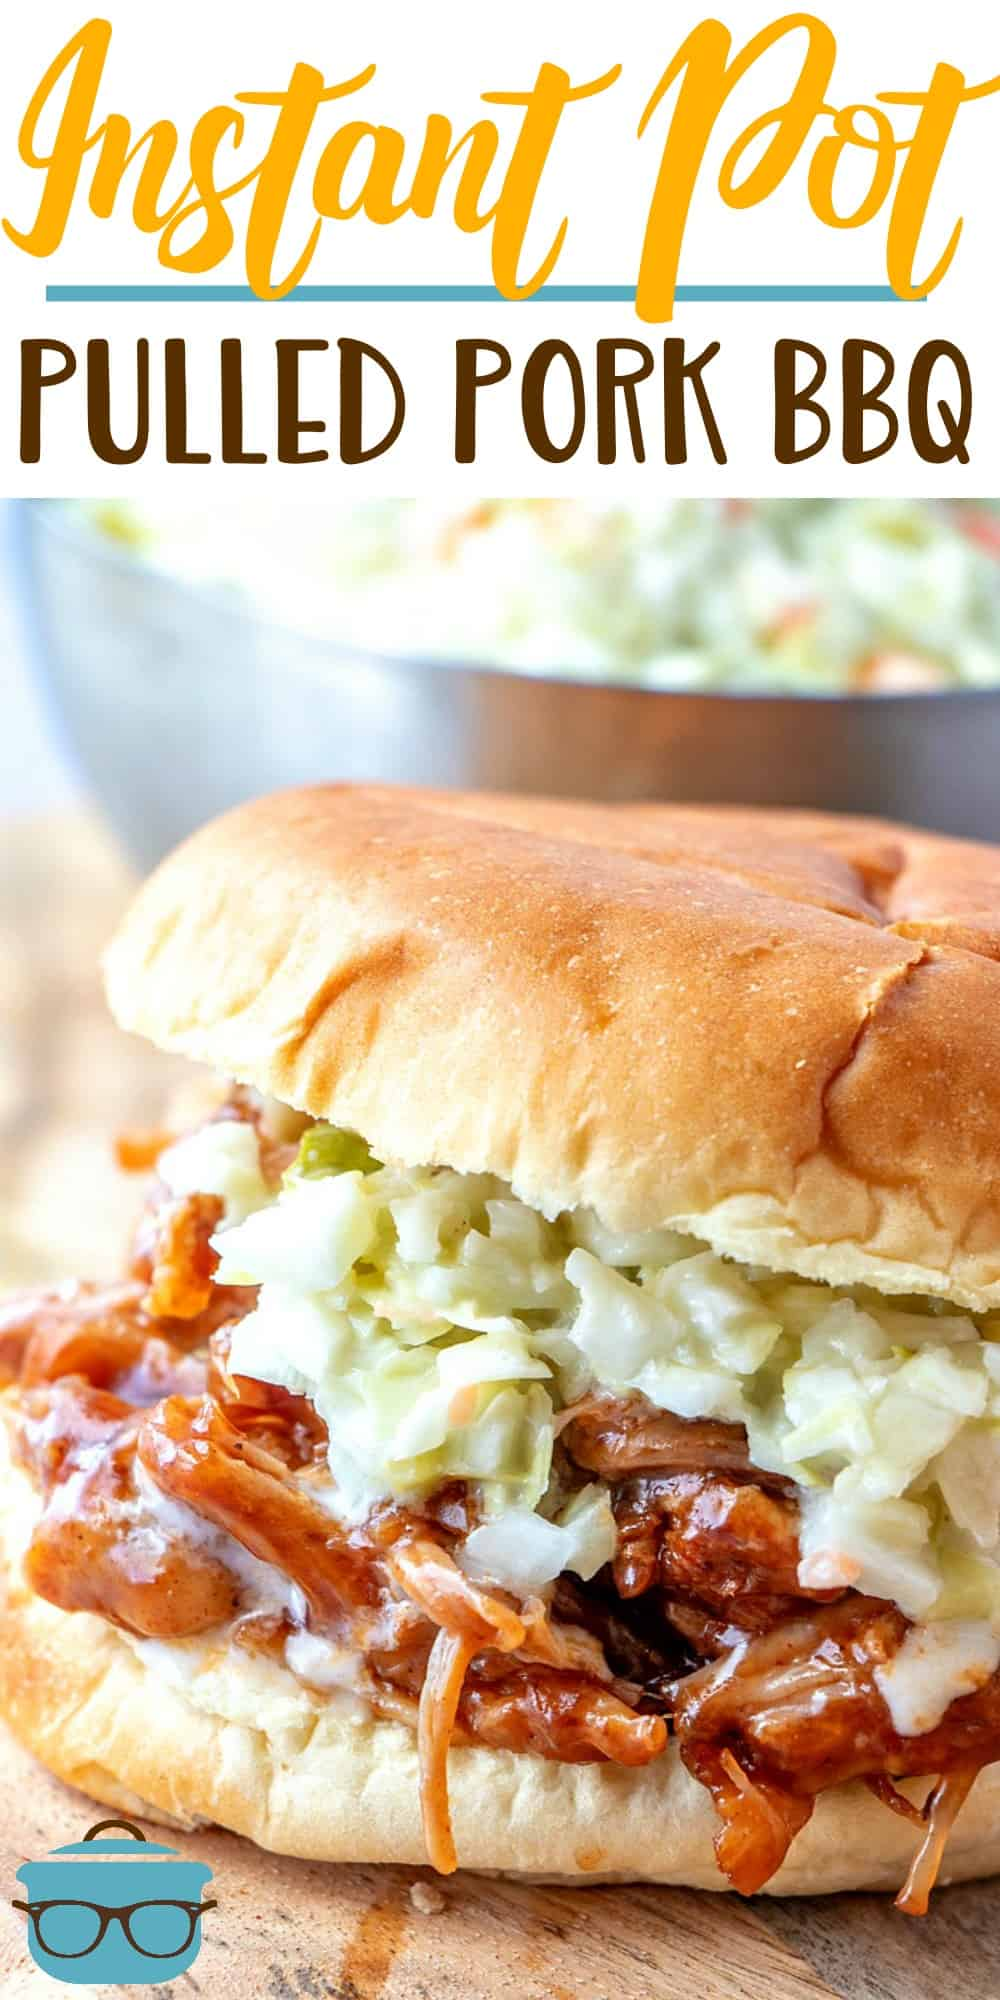 Instant Pot Pulled Pork BBQ starts with a delicious rub and comes out so tender! Make this easy pulled pork that is perfectly cooked in less than an hour! #InstantPot #pulledpork